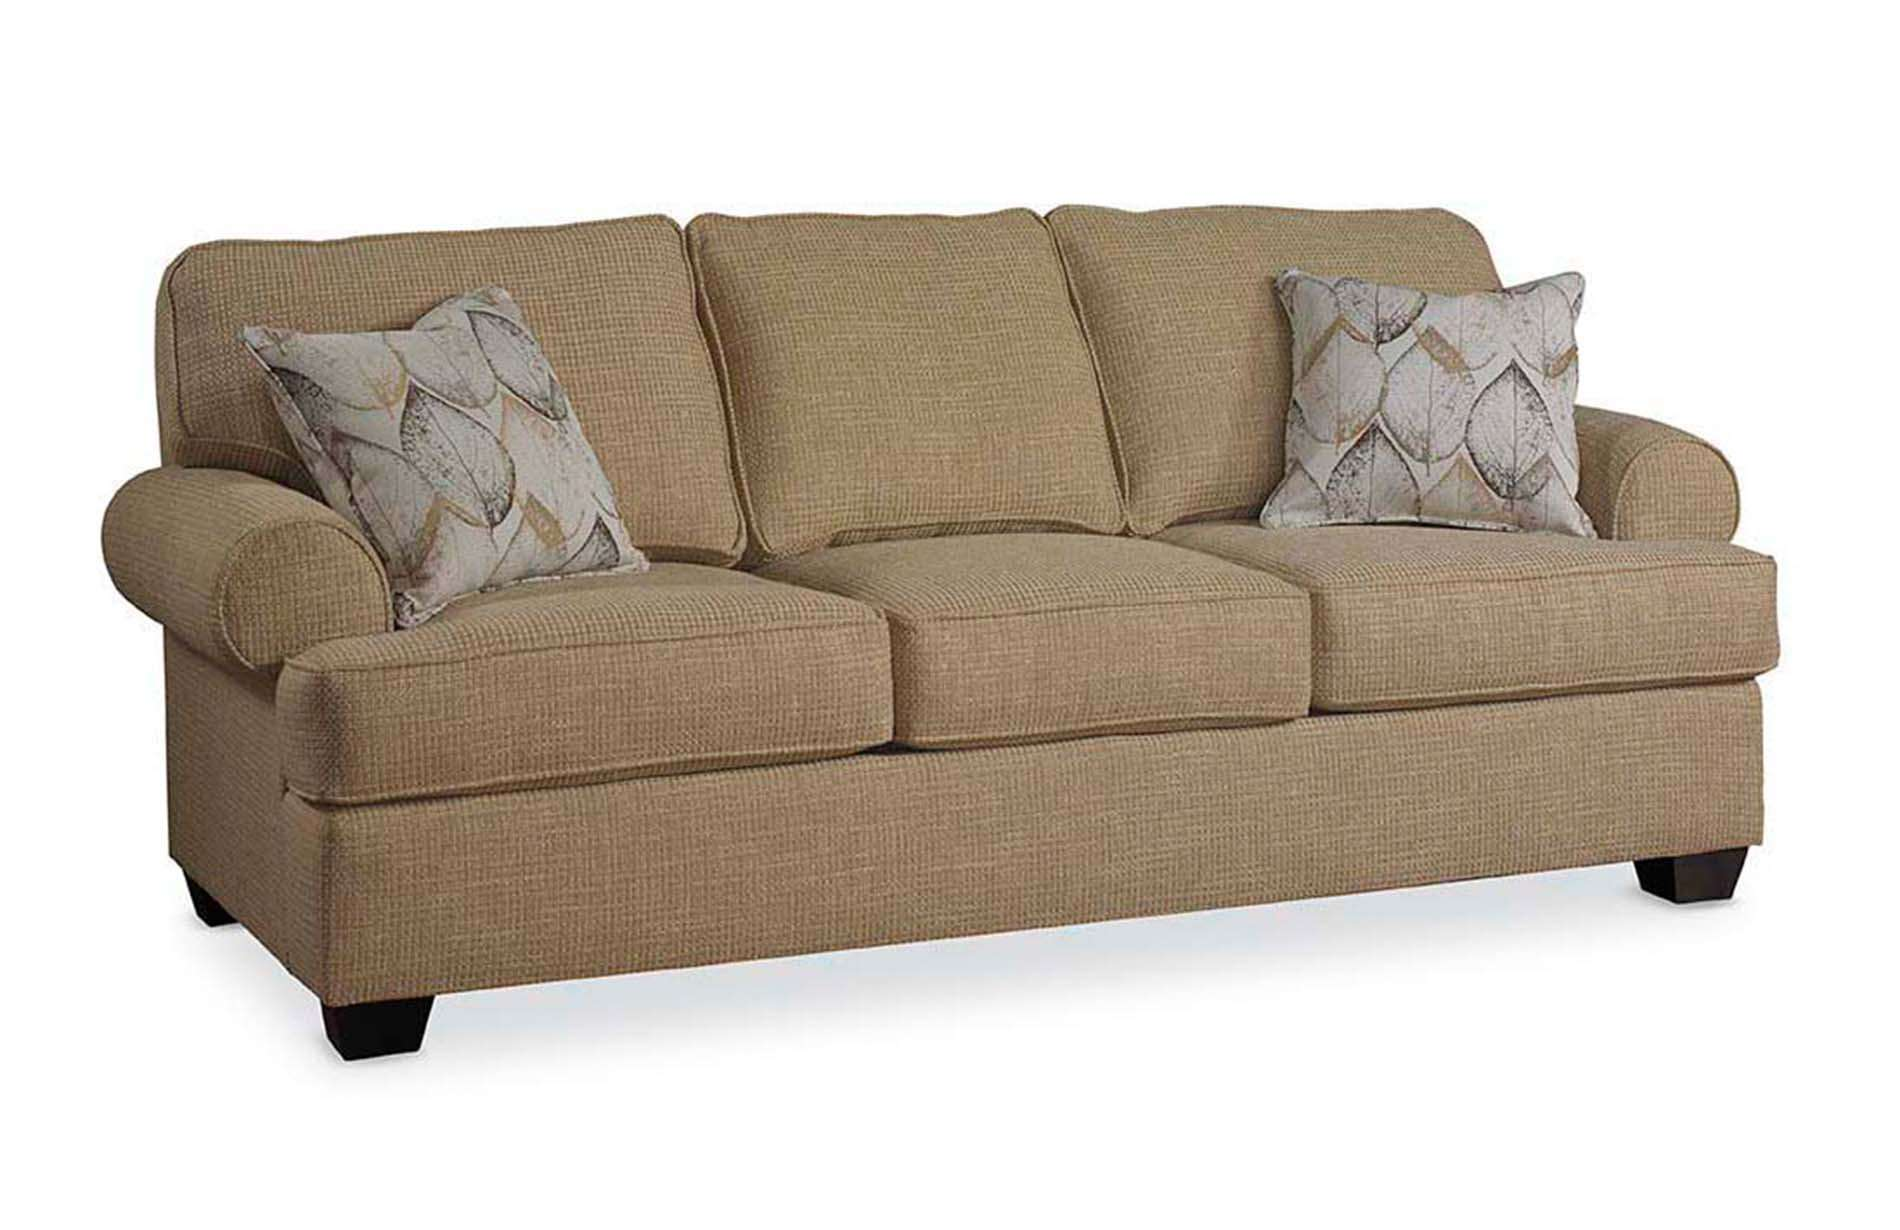 Sofas Rowe Furniture